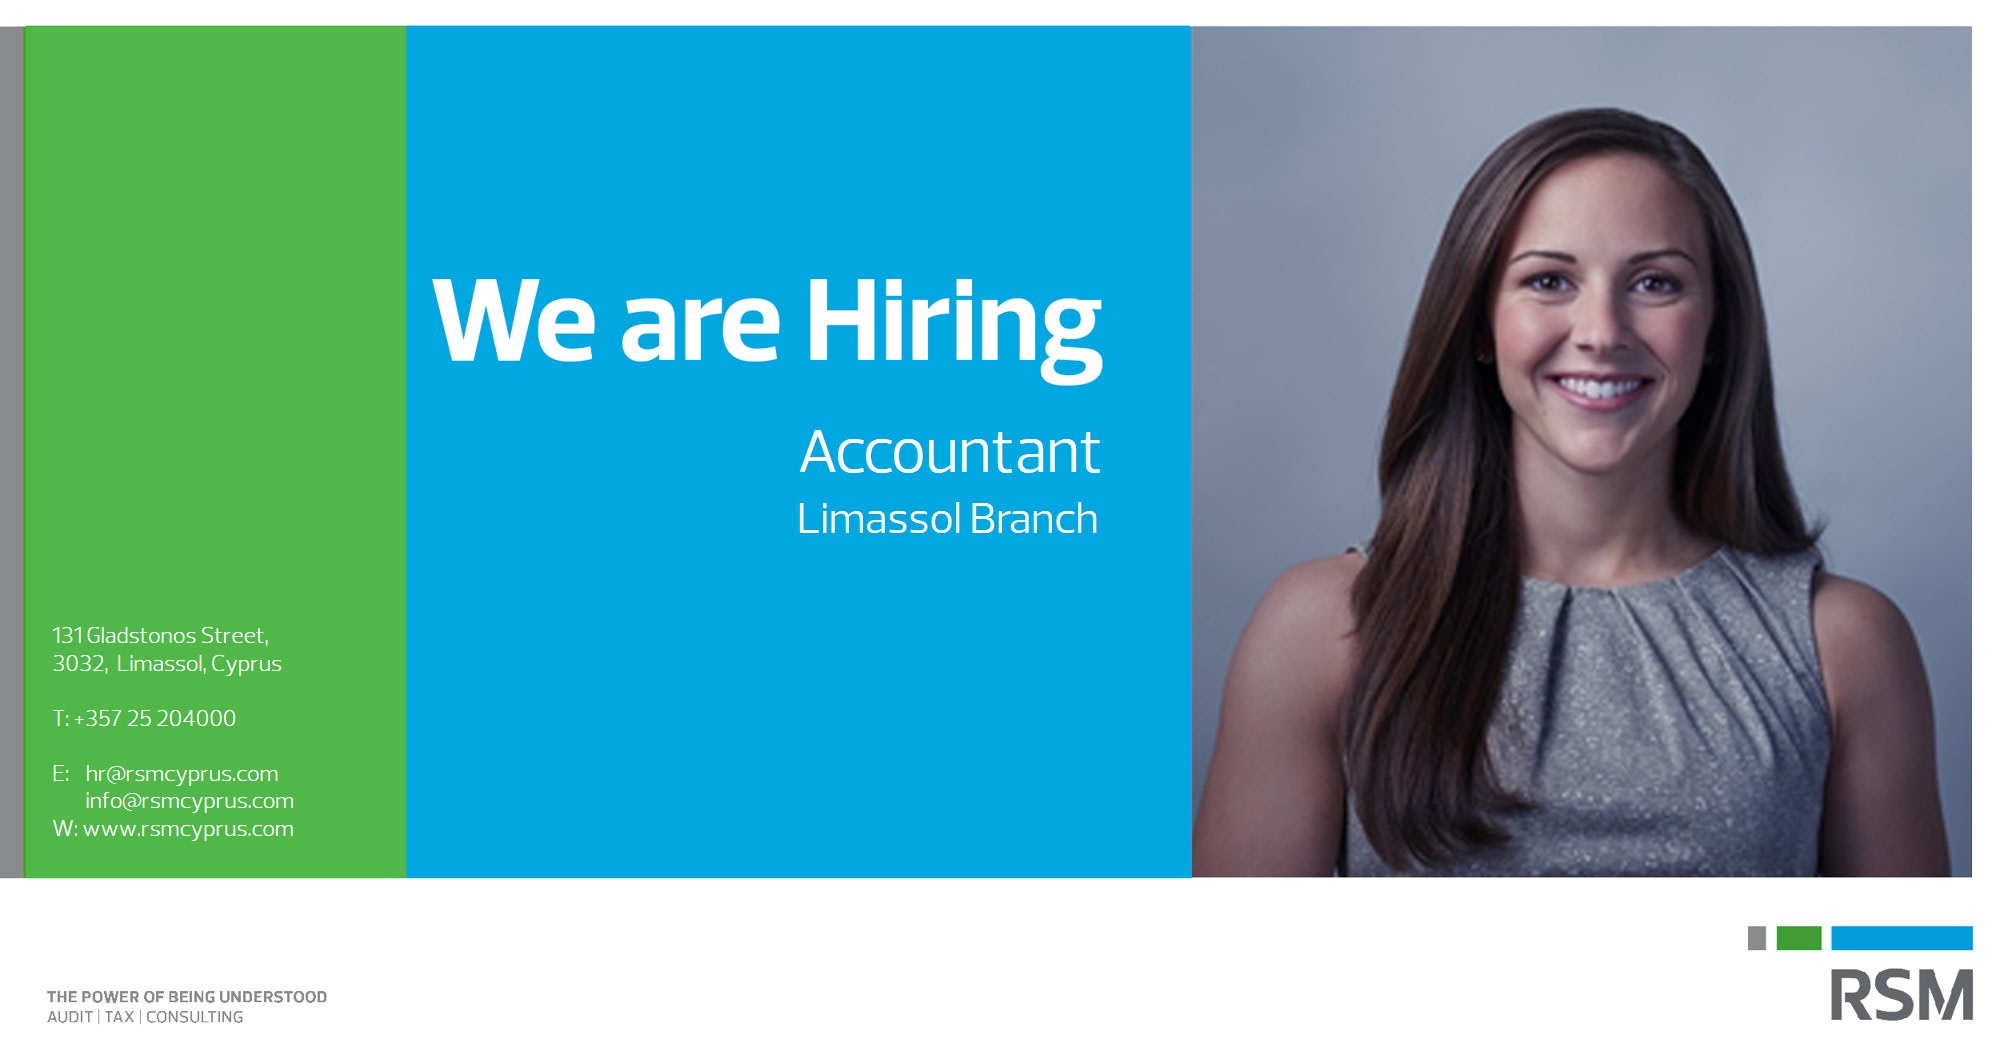 Accountant - Limassol Branch